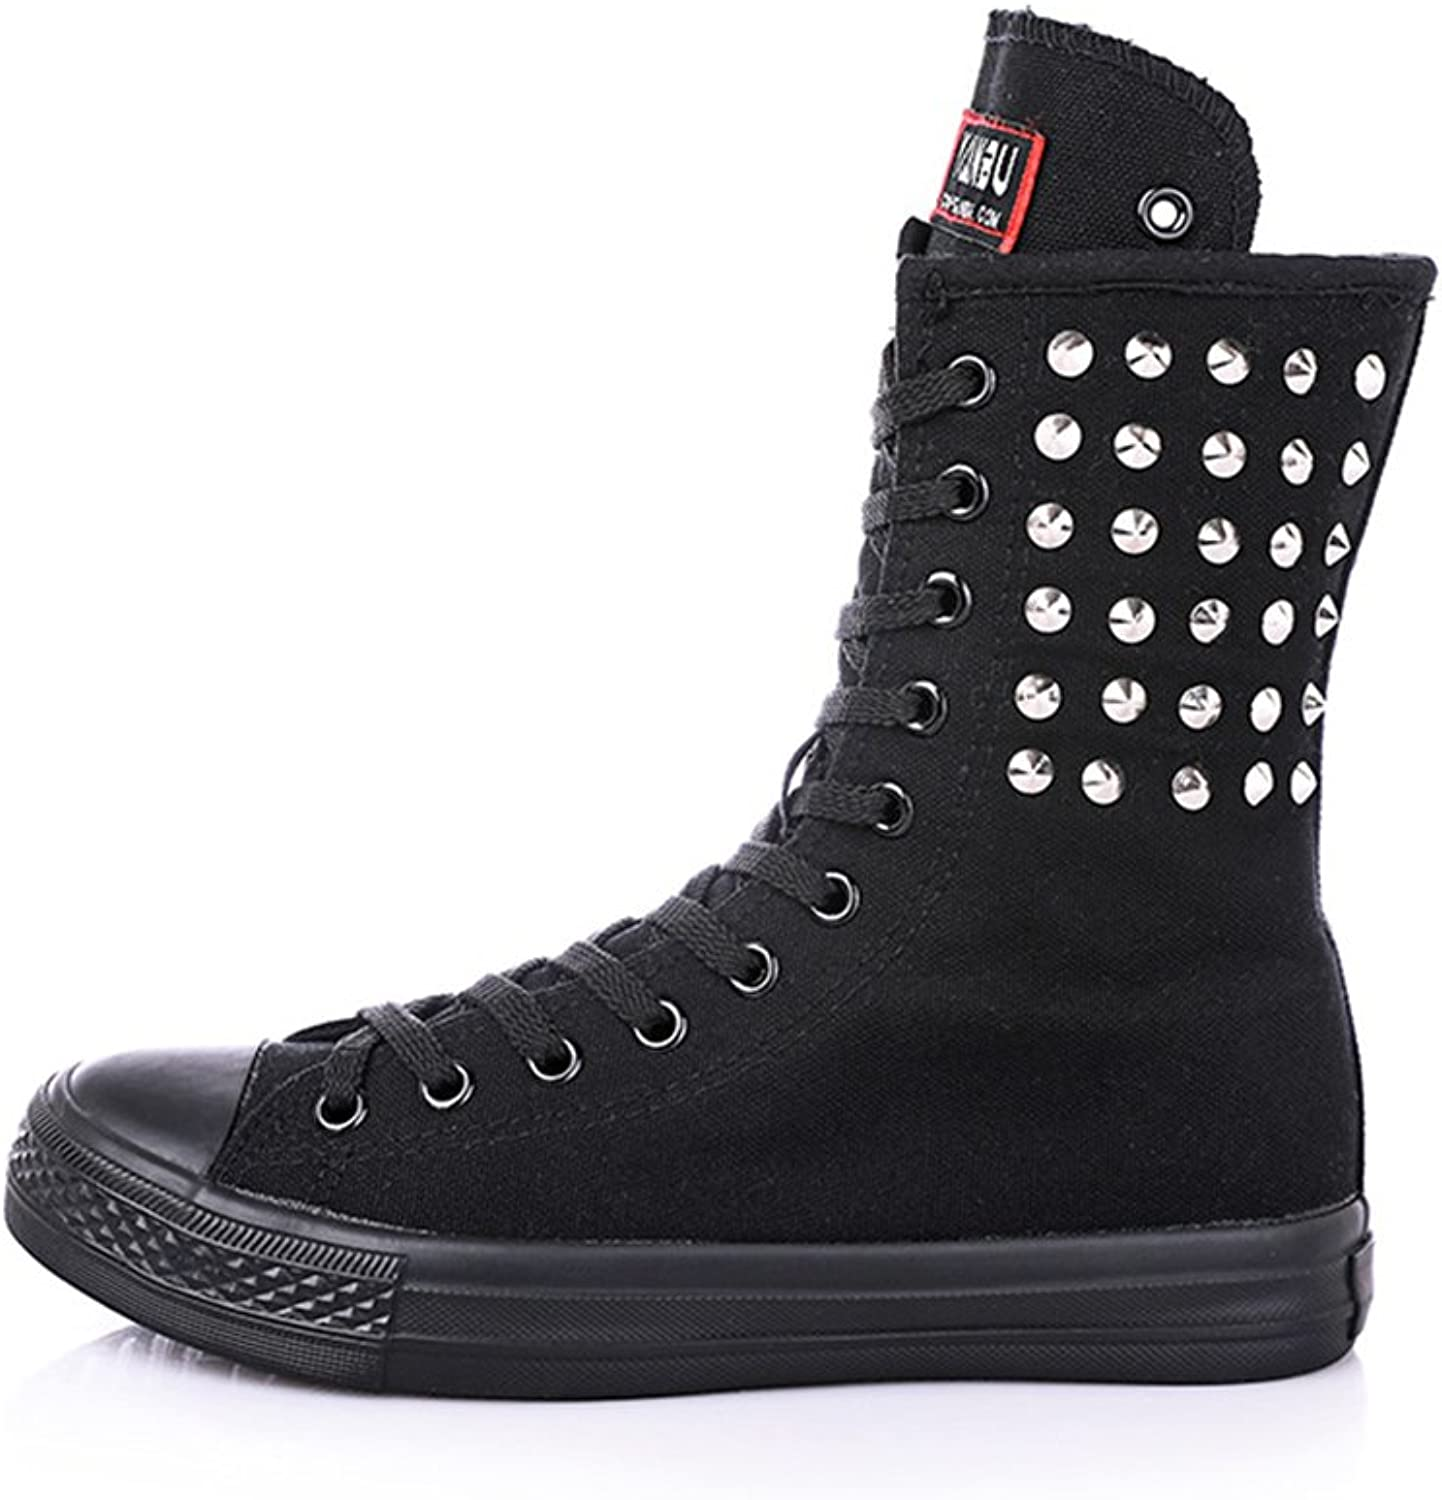 High Woman Boots Tall Classic Canvas Sky High Lace up Stylish Punk Flat Sneaker Boots